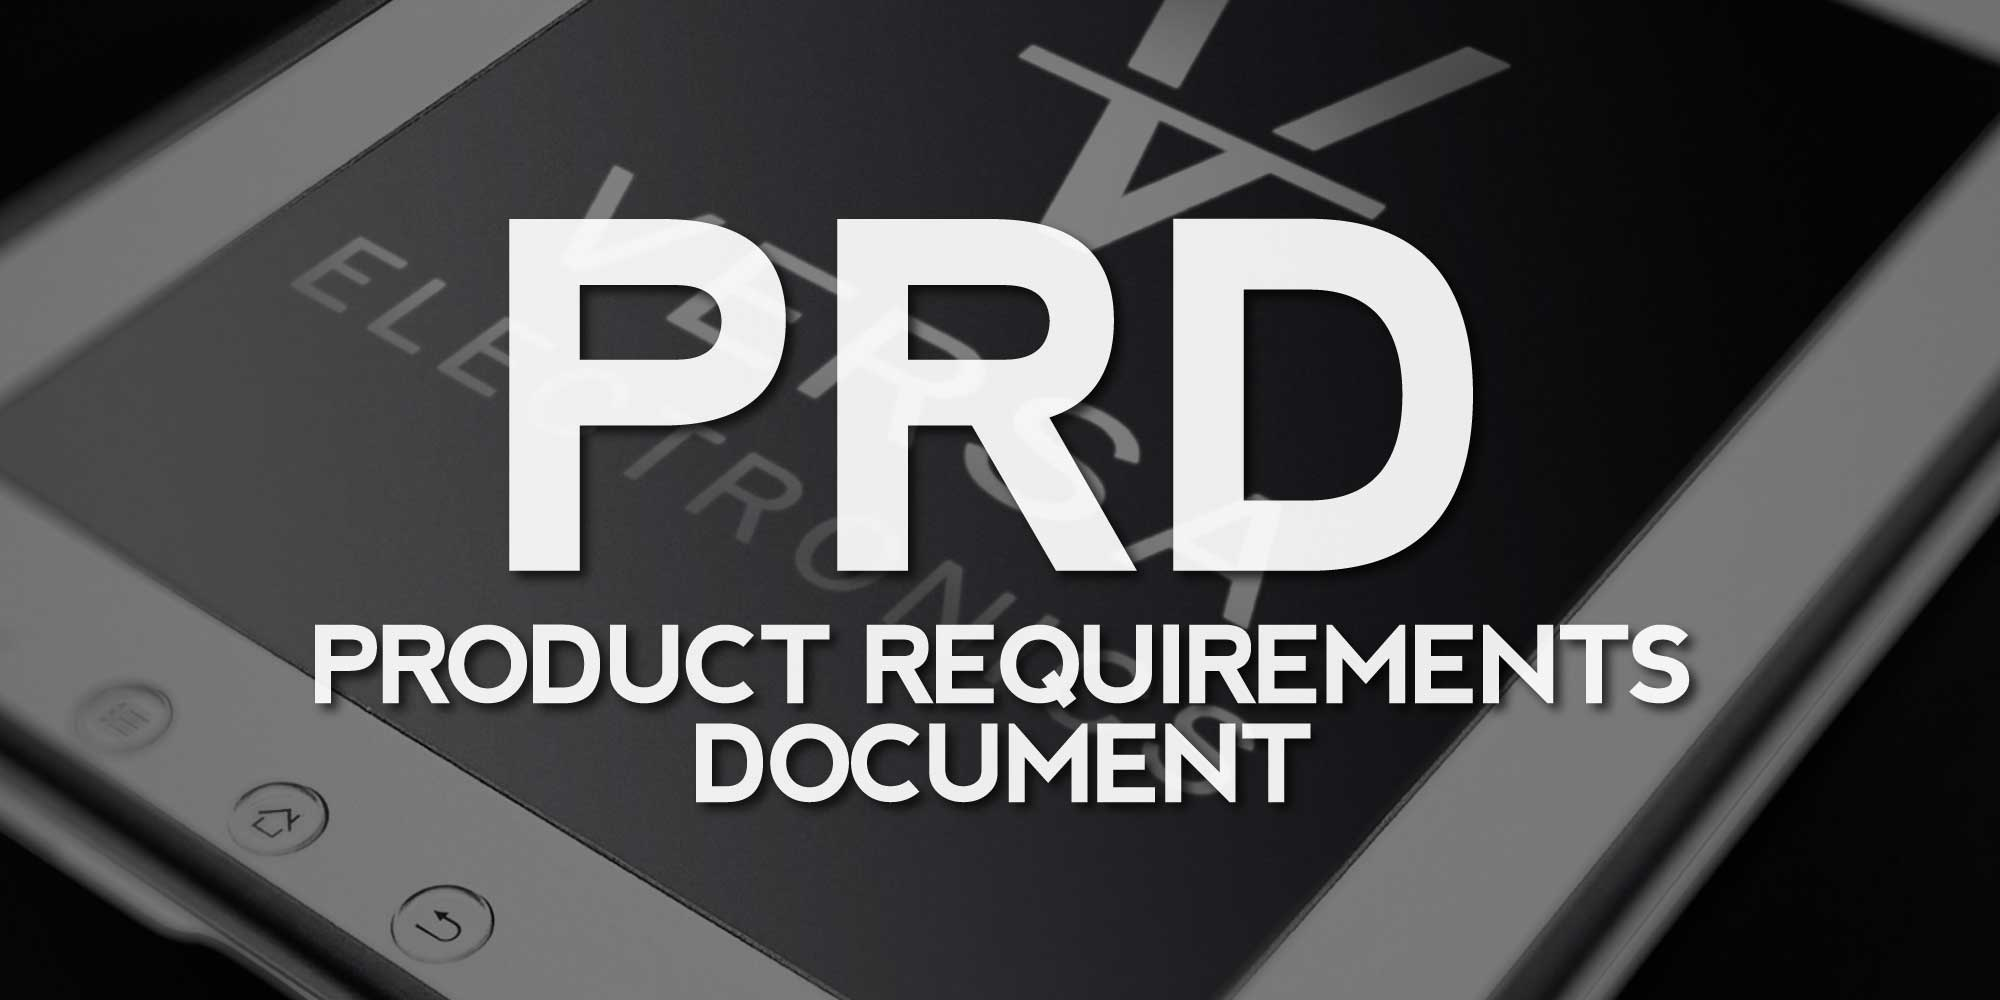 Electronic Manufacturing Acronyms You Need To Know - PCB, PCBA, SMT